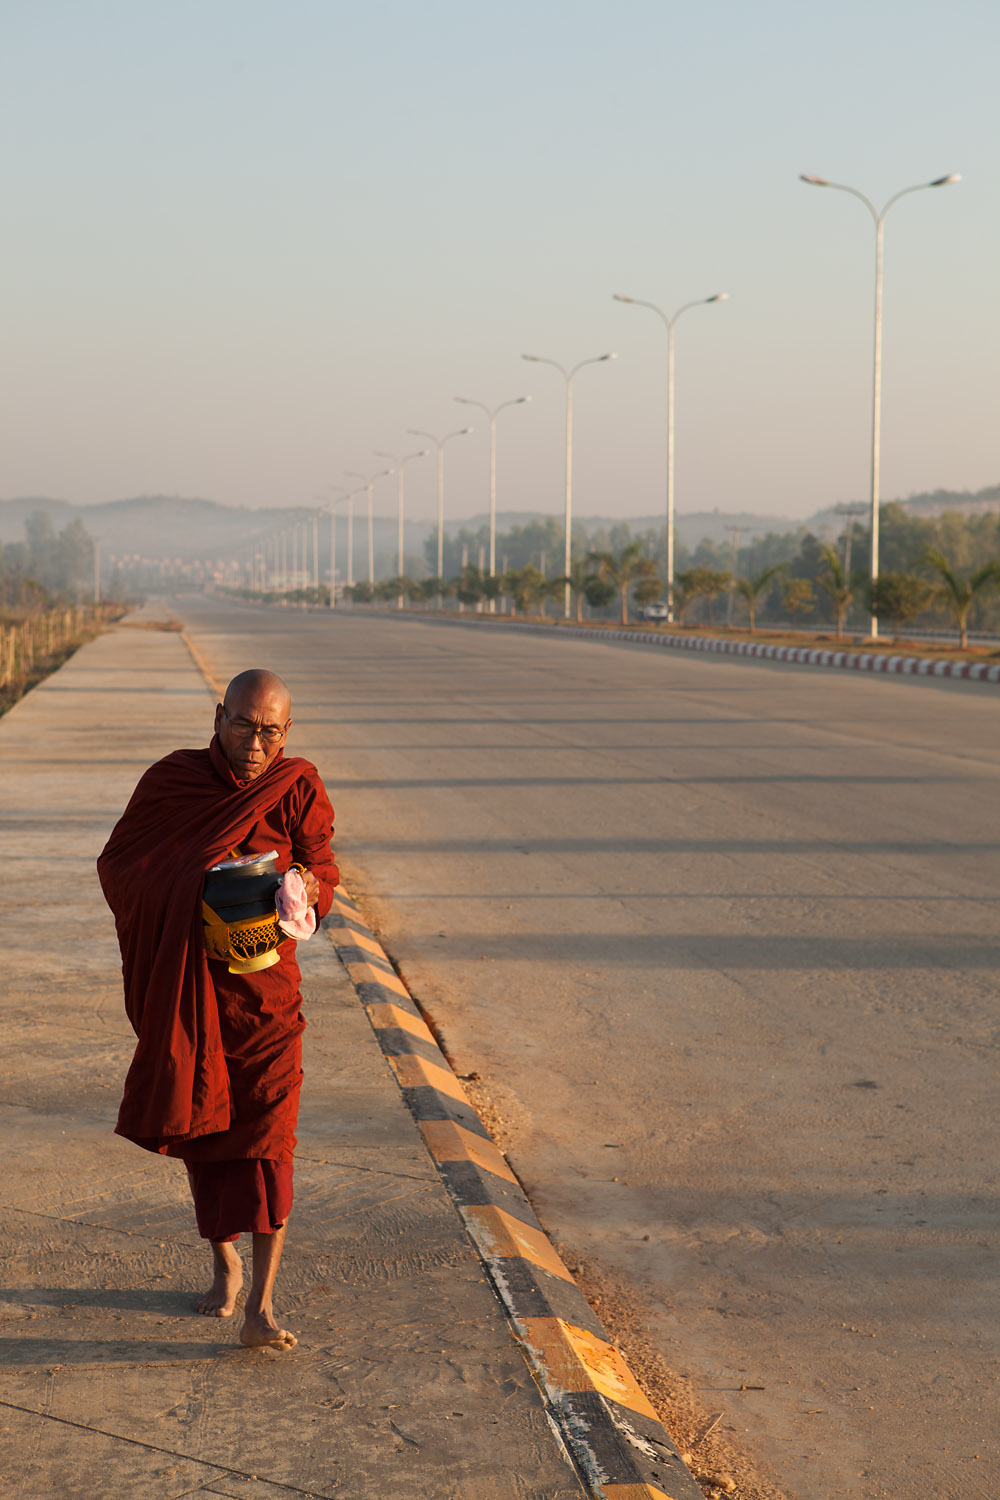 A Buddhist Monk walks down a freeway after collecting alms.